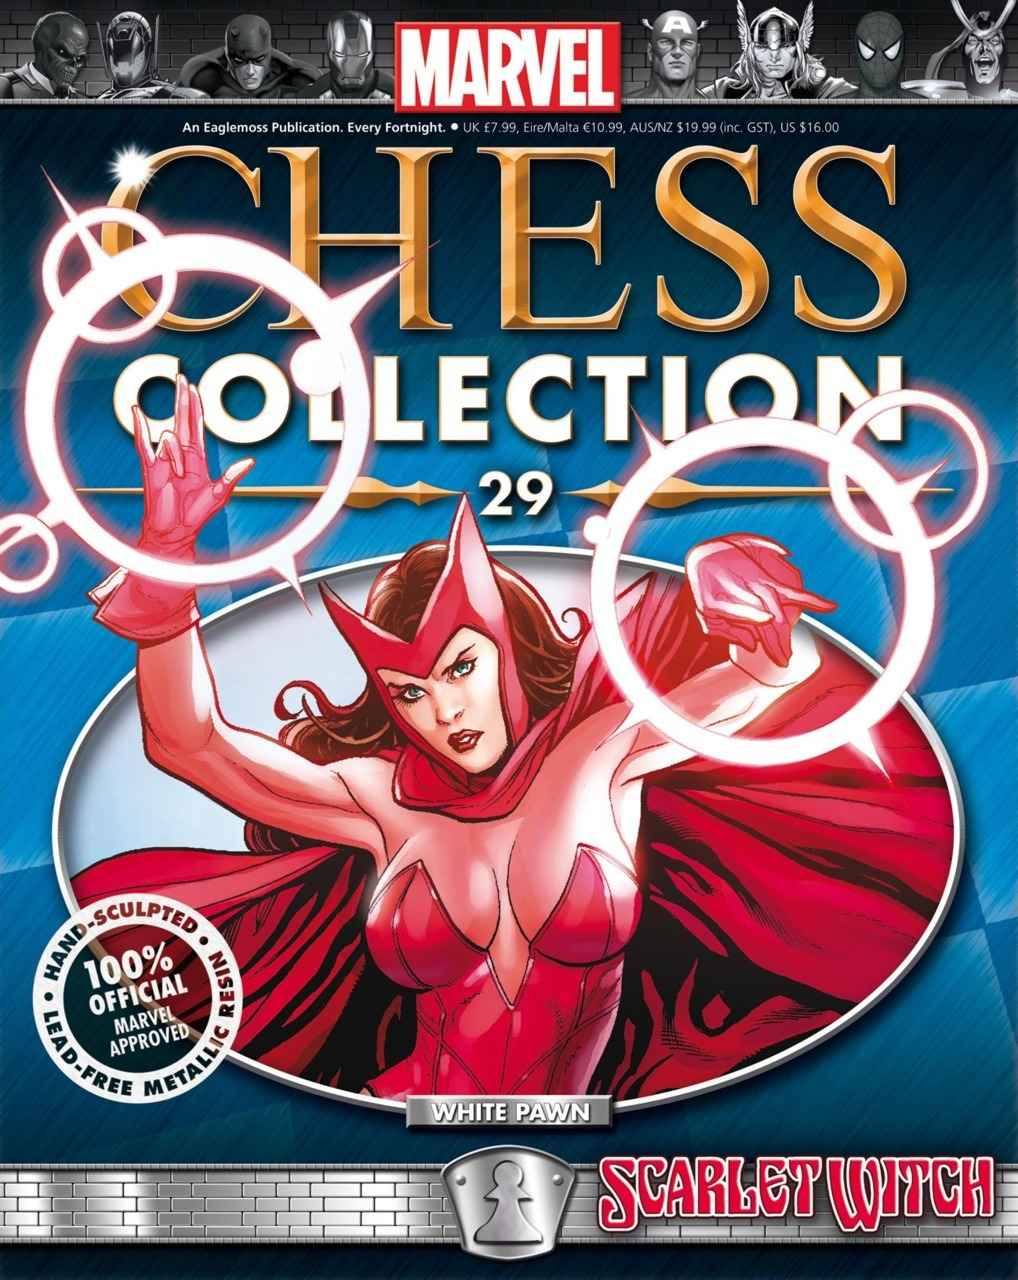 Scarlet Witch - White Pawn (Marvel Chess Collection, #29) Nick Abadzis